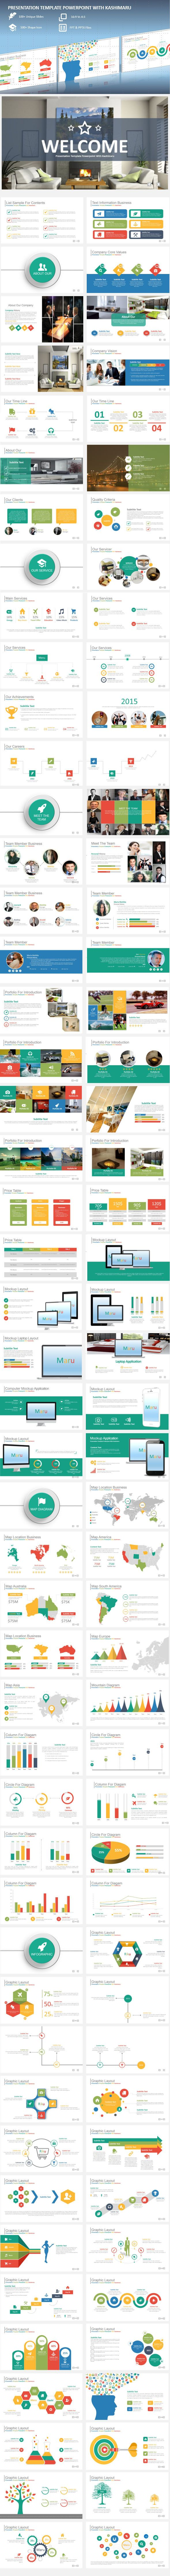 Maru Powerpoint Business (PowerPoint Templates) - Stunning Resources for designers - OrTheme